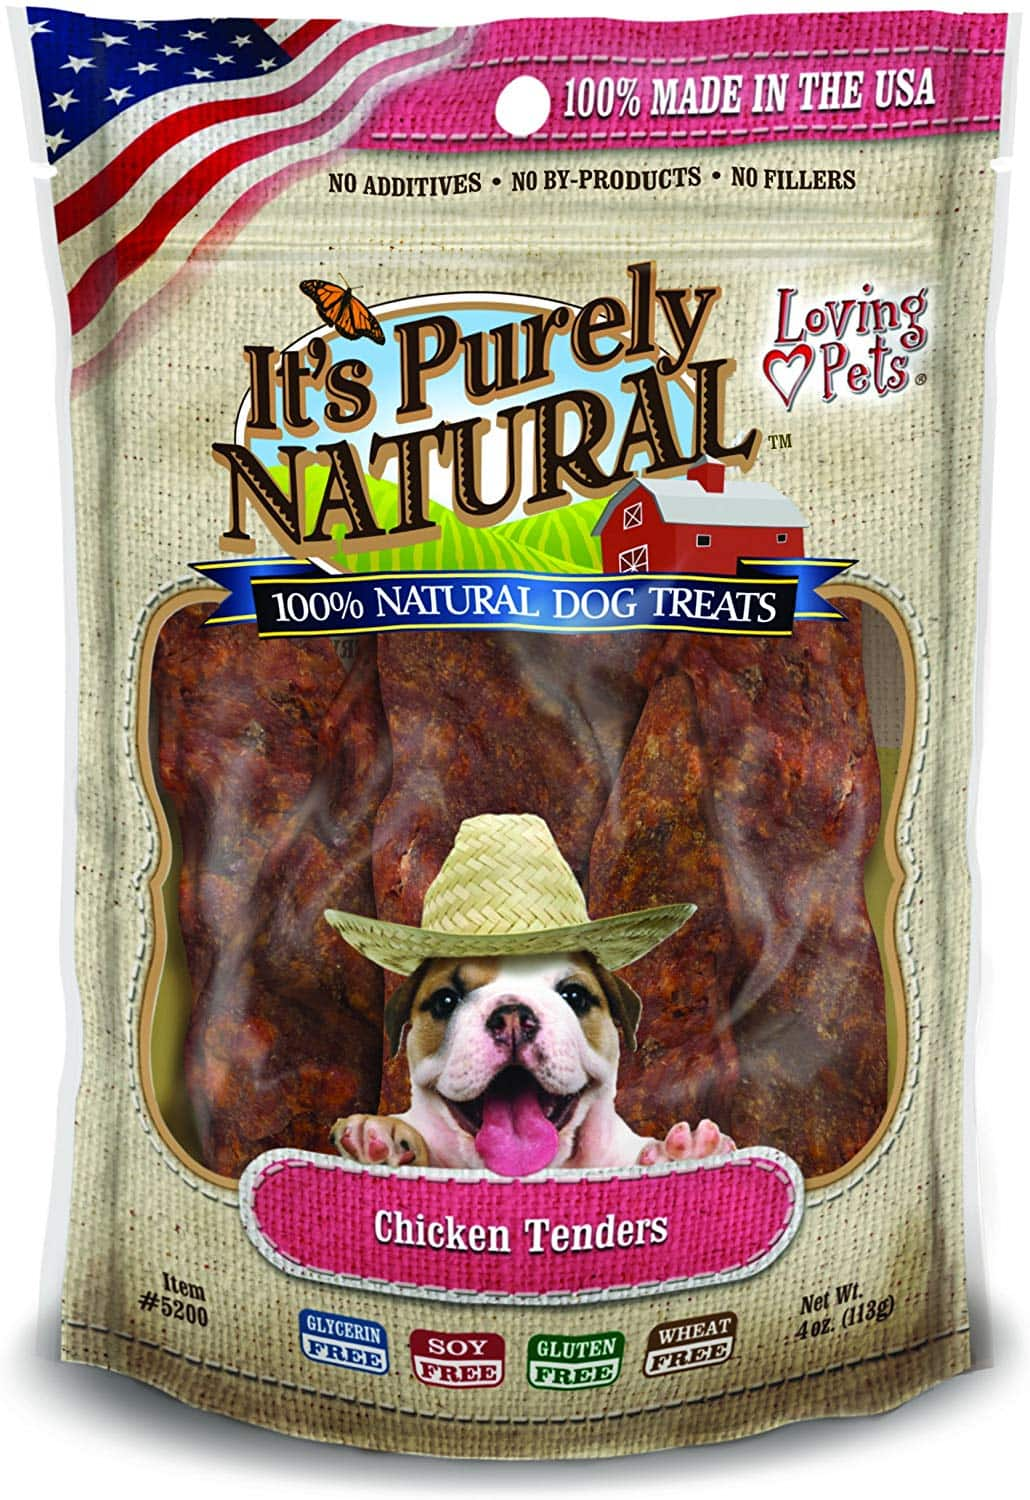 Loving Pets Products It'S Purely Natural Chicken Tenders or Beef Jerky Dog Treat, 4-Ounce - $1.80 at Amazon + FS with Prime or less with Subscribe and Save